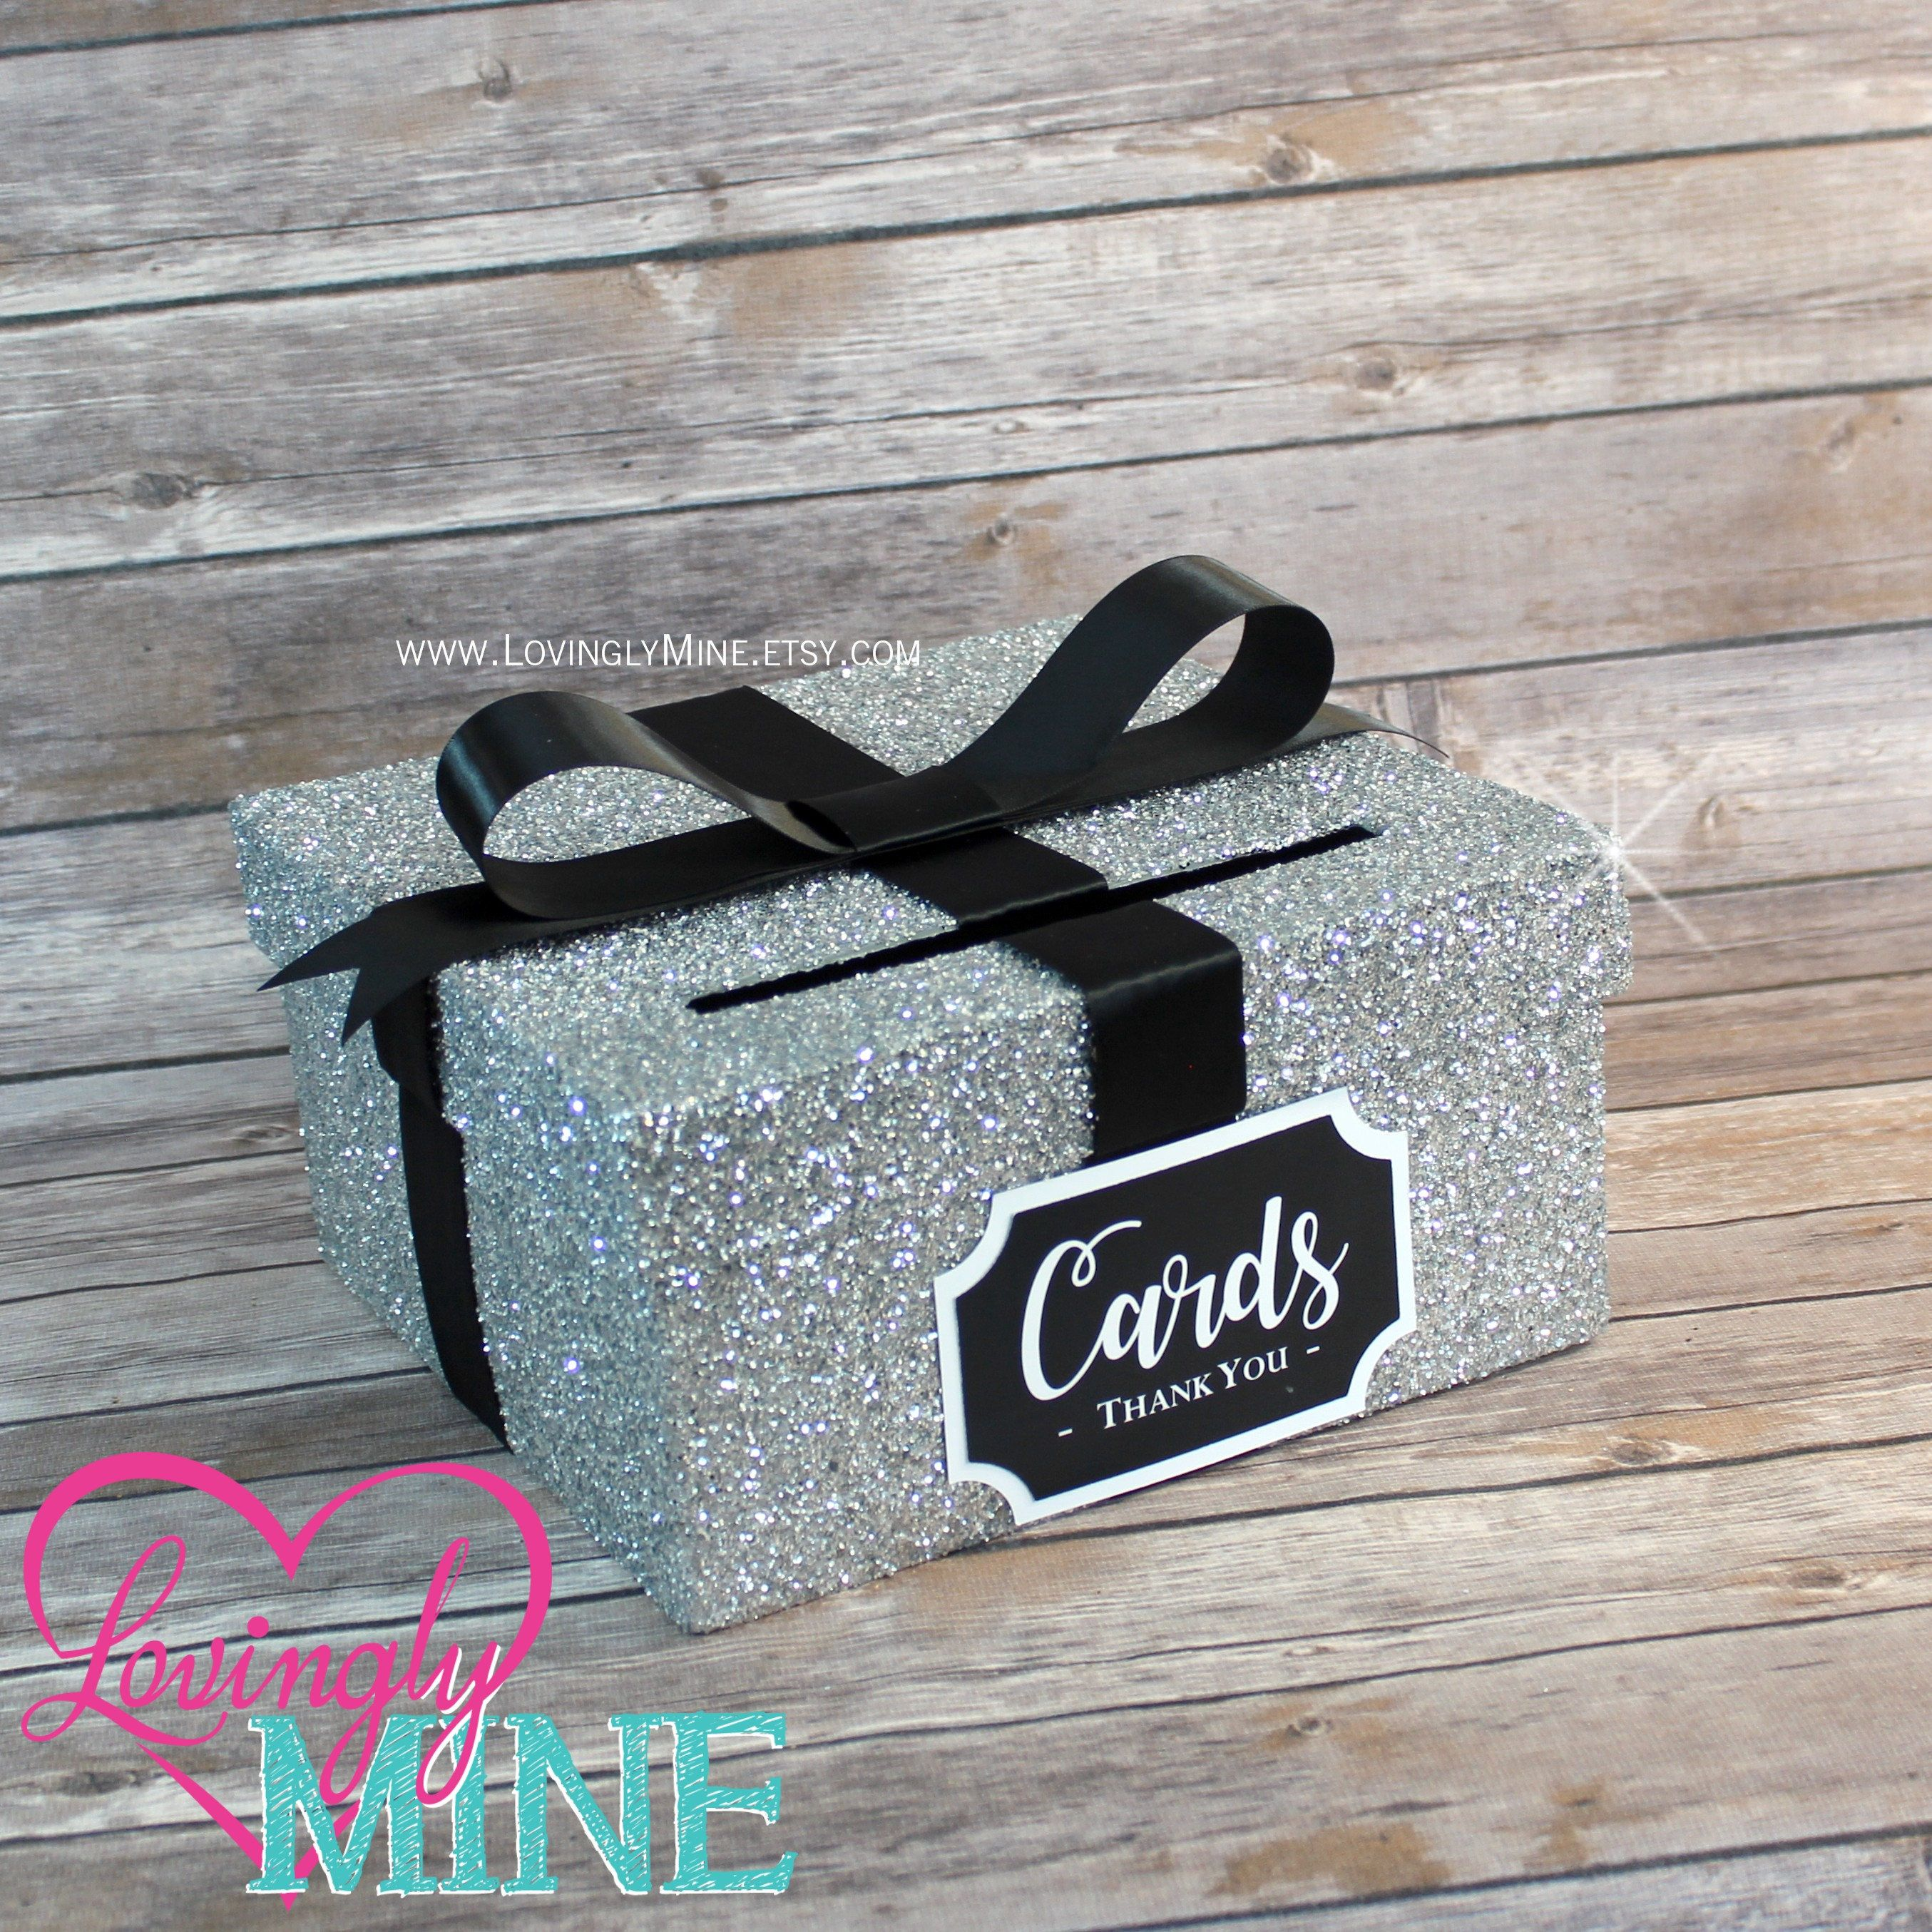 Card box glitter silver and black gift money box for any event card box glitter silver and black gift money box for any event baby shower wedding bridal shower birthday party sweet 16 bookmarktalkfo